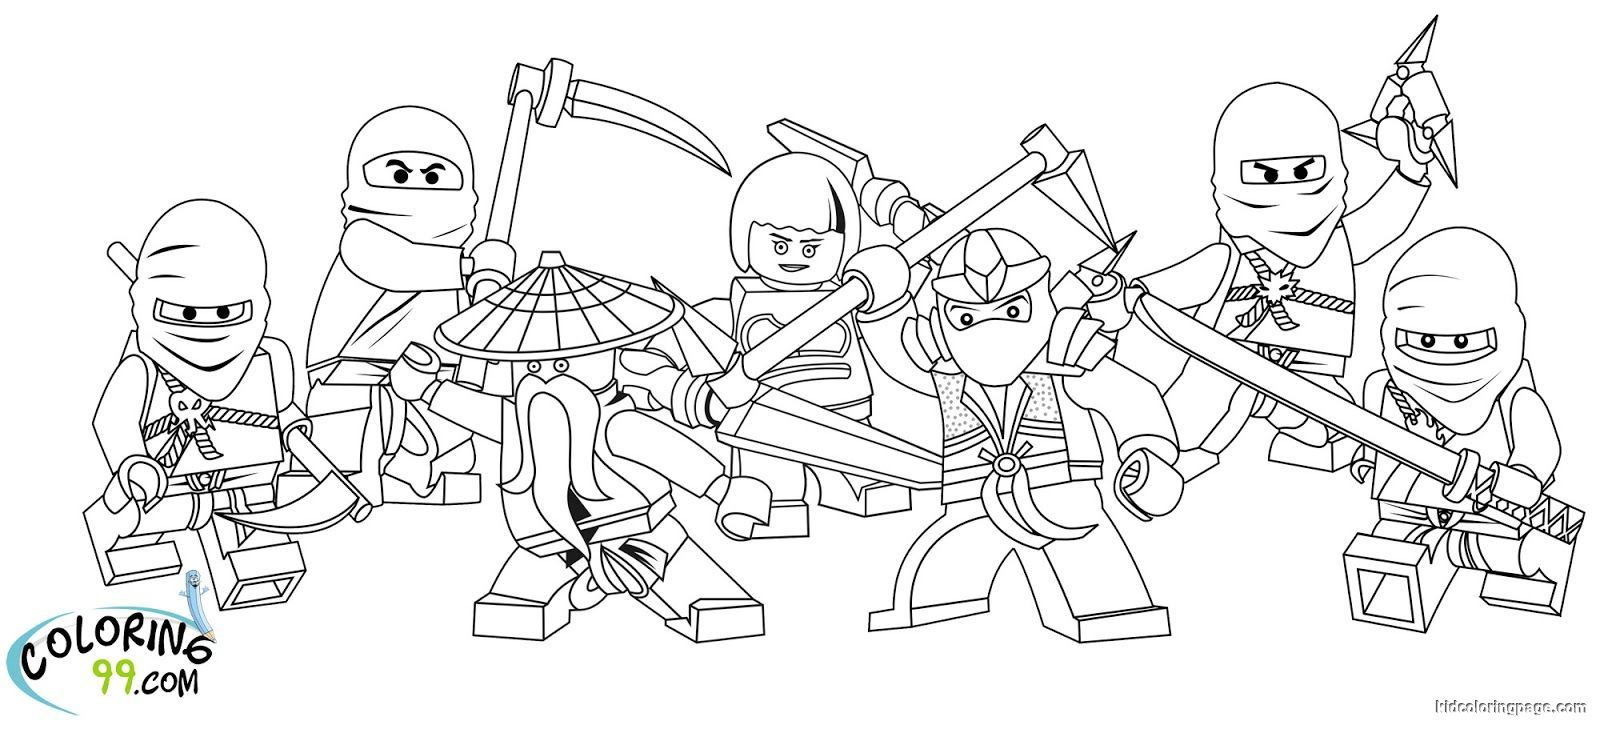 Lego Ninjago Team Coloring Pages Free Coloring Pages Printable Ninjago Coloring Pages Lego Coloring Pages Free Coloring Pages